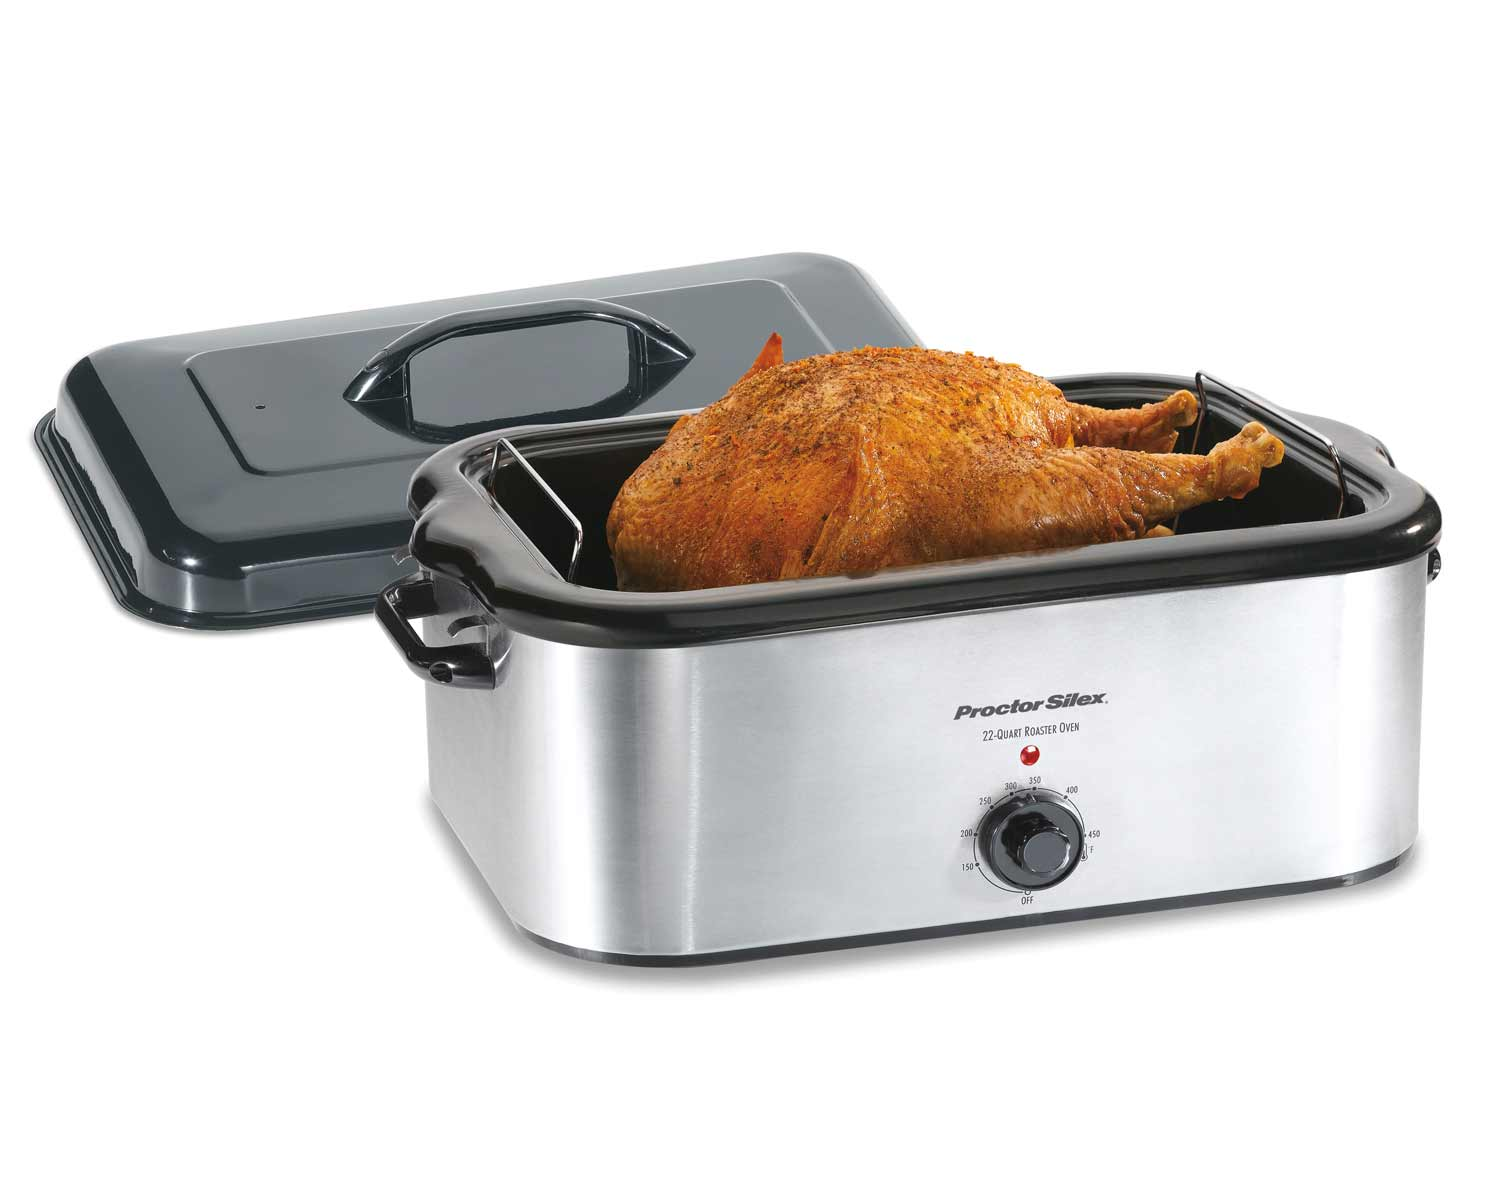 Stainless Steel 22 Quart Roaster Oven-32230A